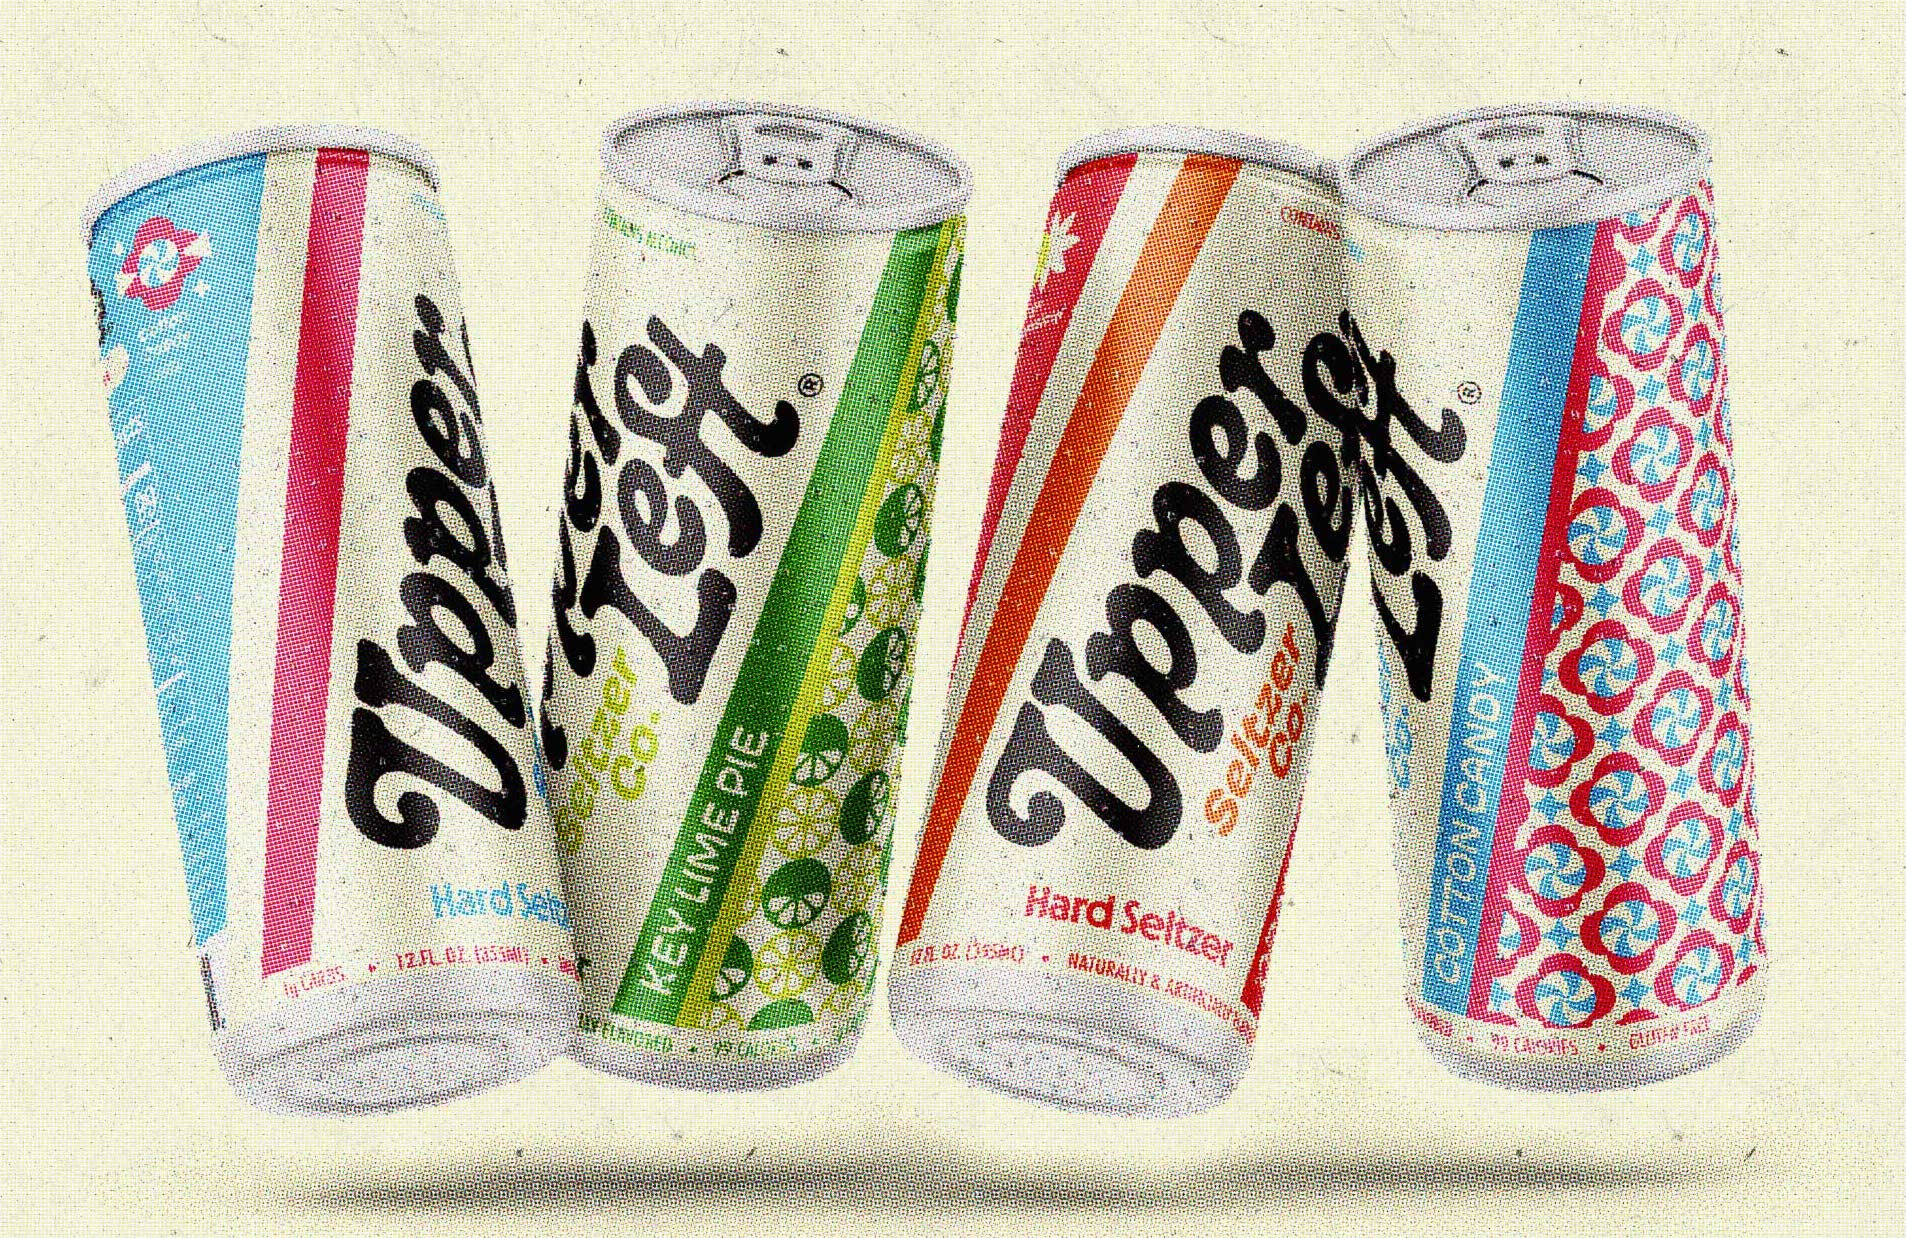 Four cans, designed with '70s-style font and colorful patterns, hover in front of an off-white backdrop.